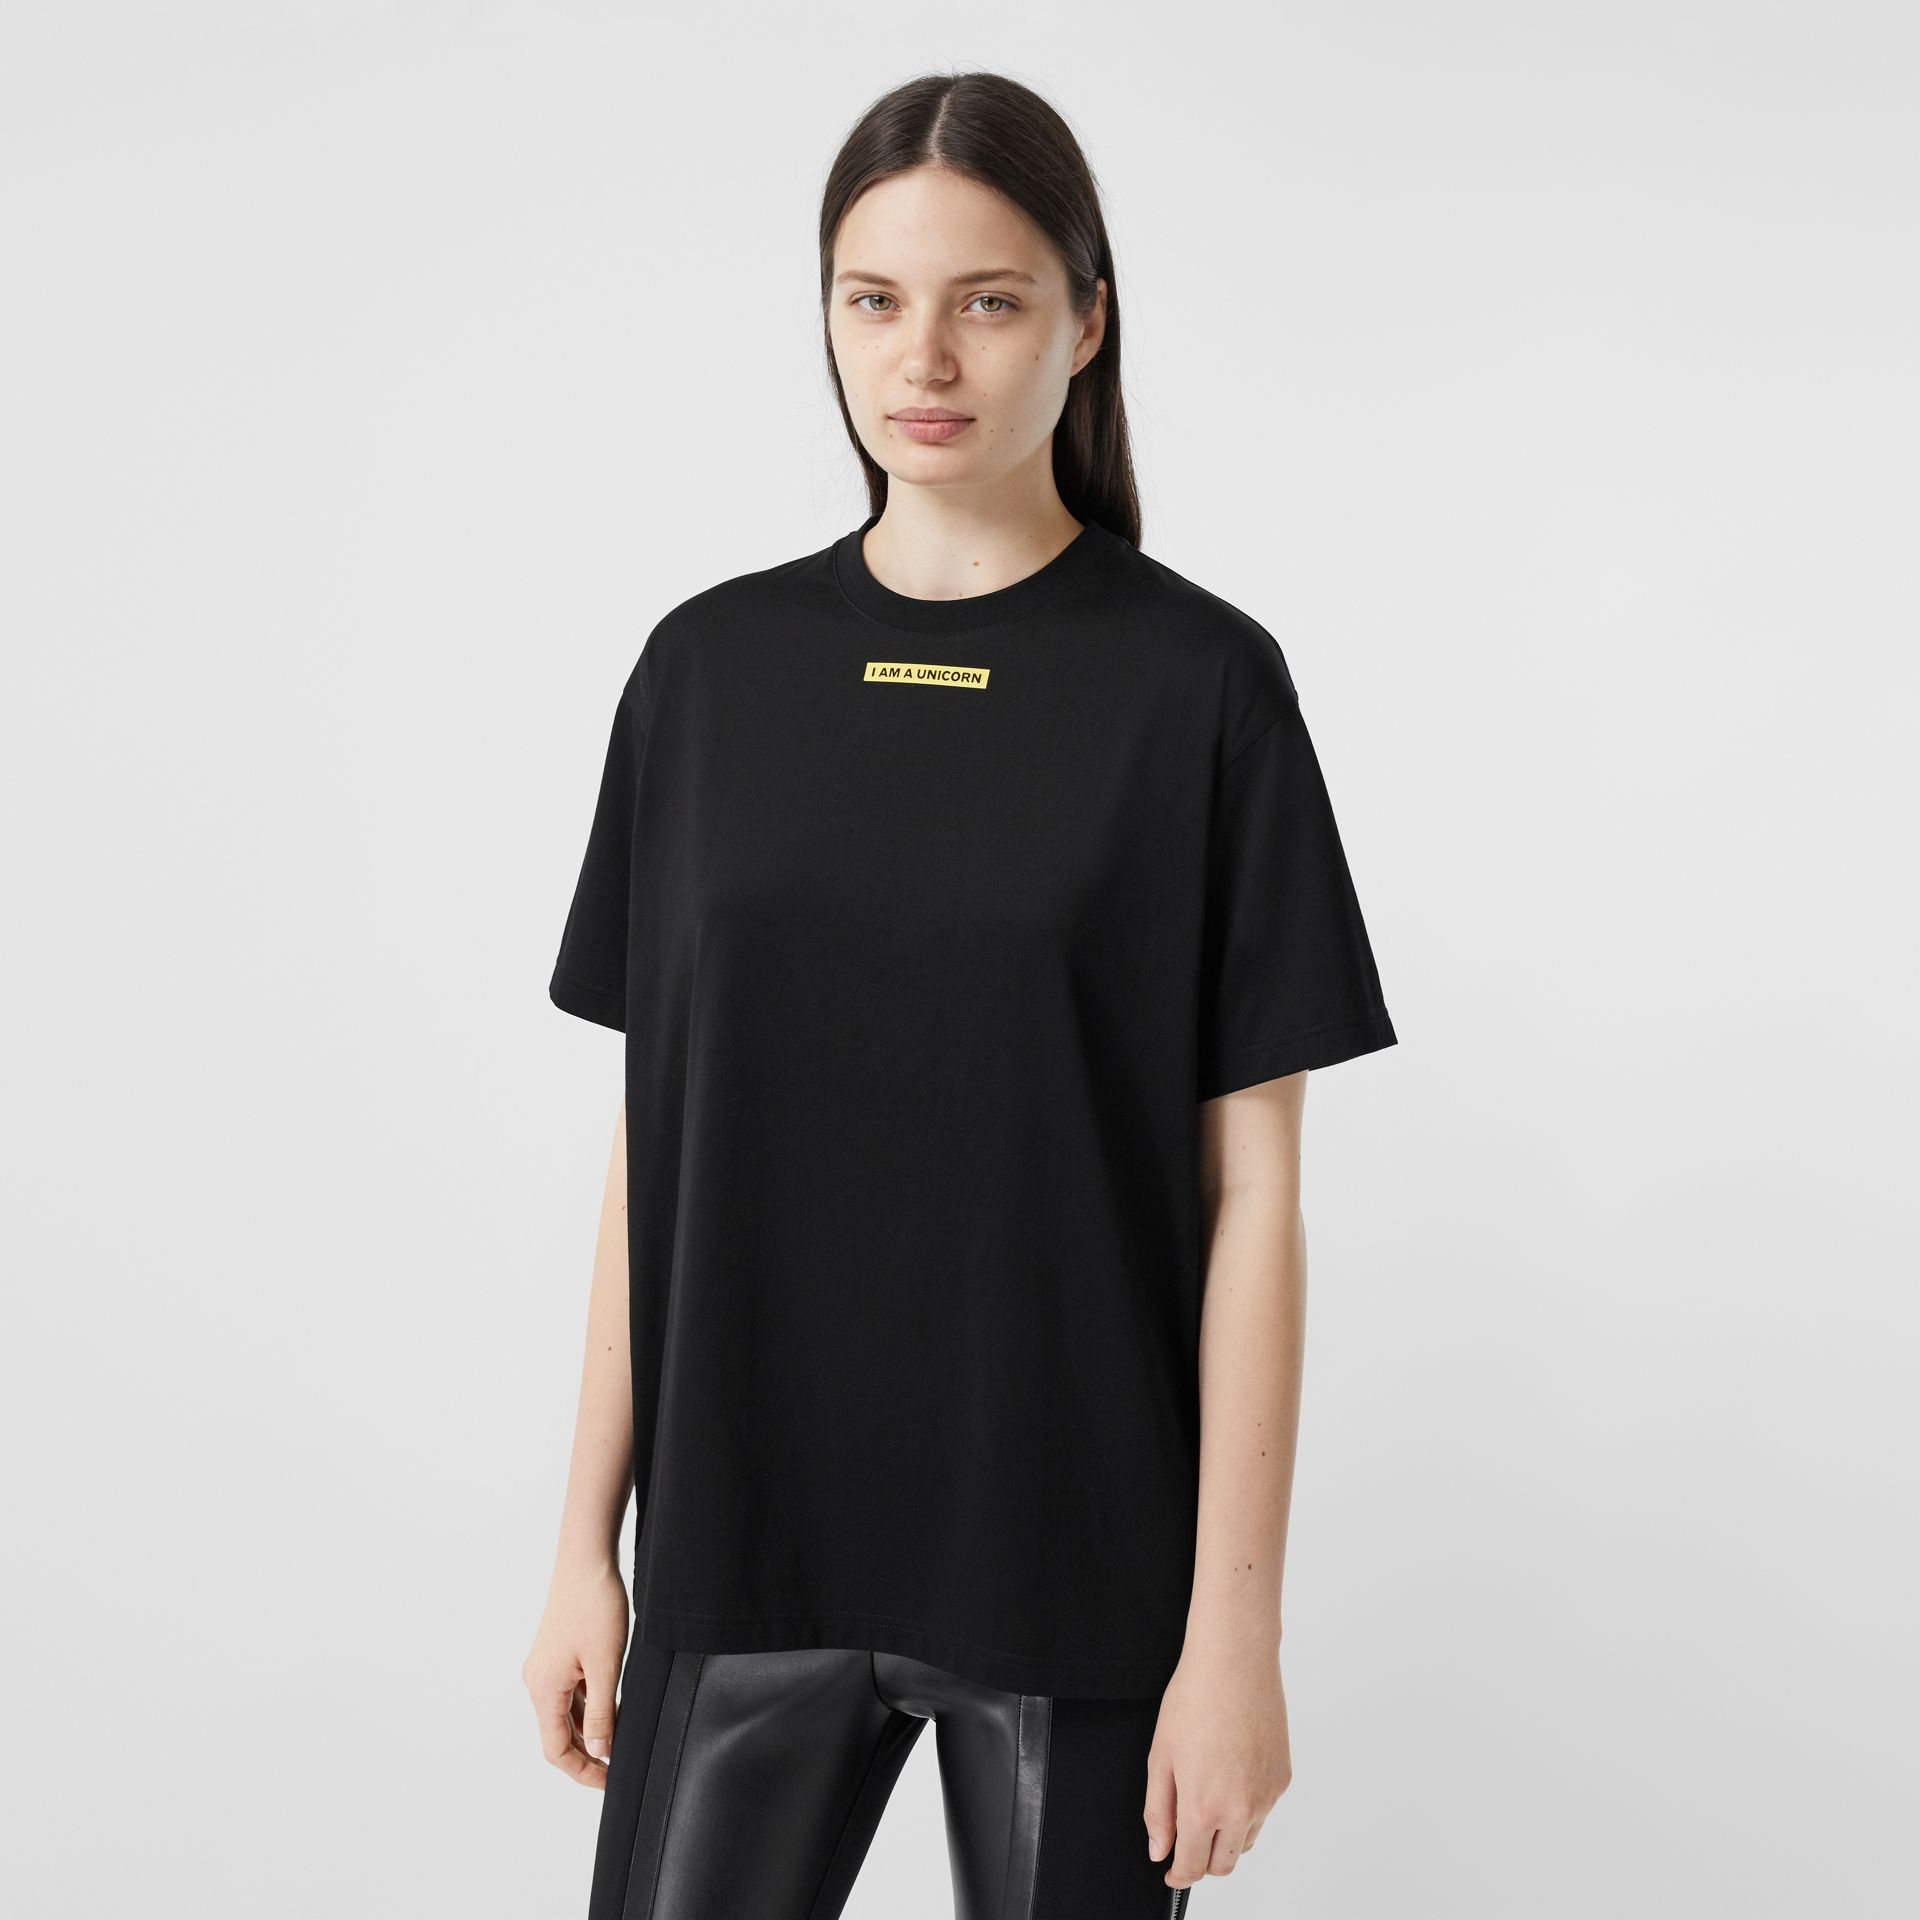 Slogan Print Oversized T-shirt – Online Exclusive in Black - Women | Burberry - gallery image 1